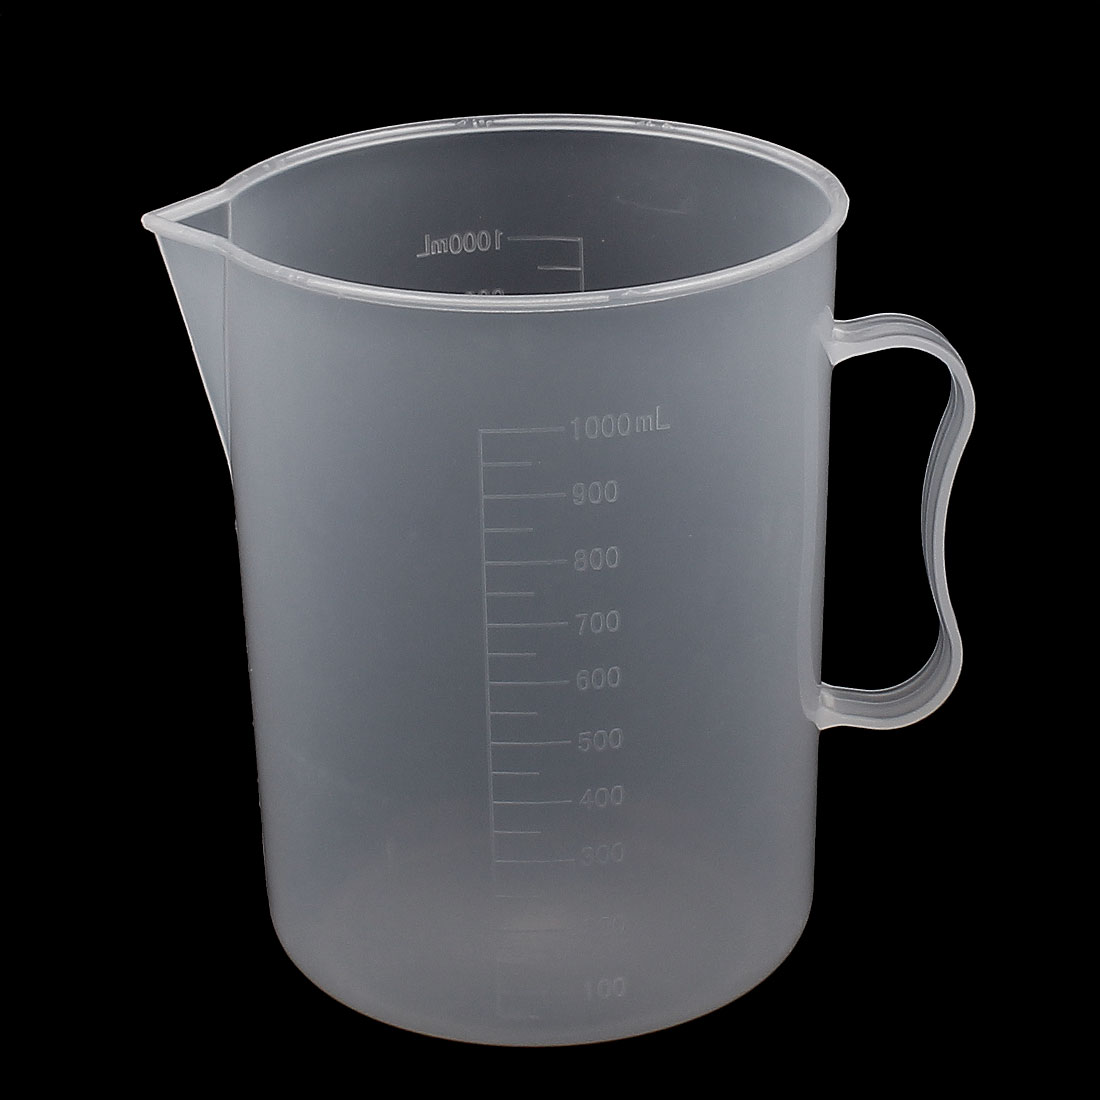 1000ML Measuring Cup Jug Graduated Surface Spoon Cooking Bakery Kitchen by Unique-Bargains